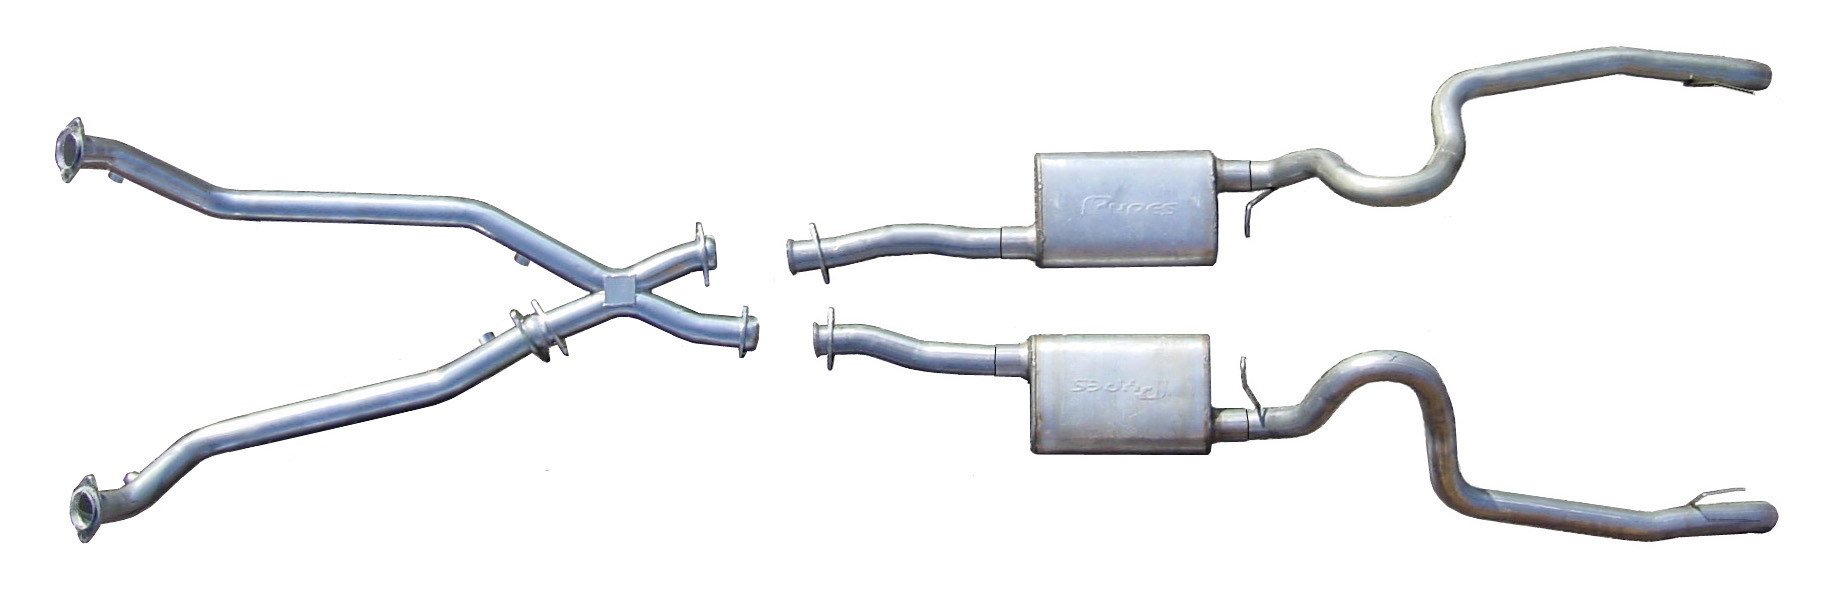 1998-2004 Mustang V6 True-Dual System w/ X-Pipe - By PYPES